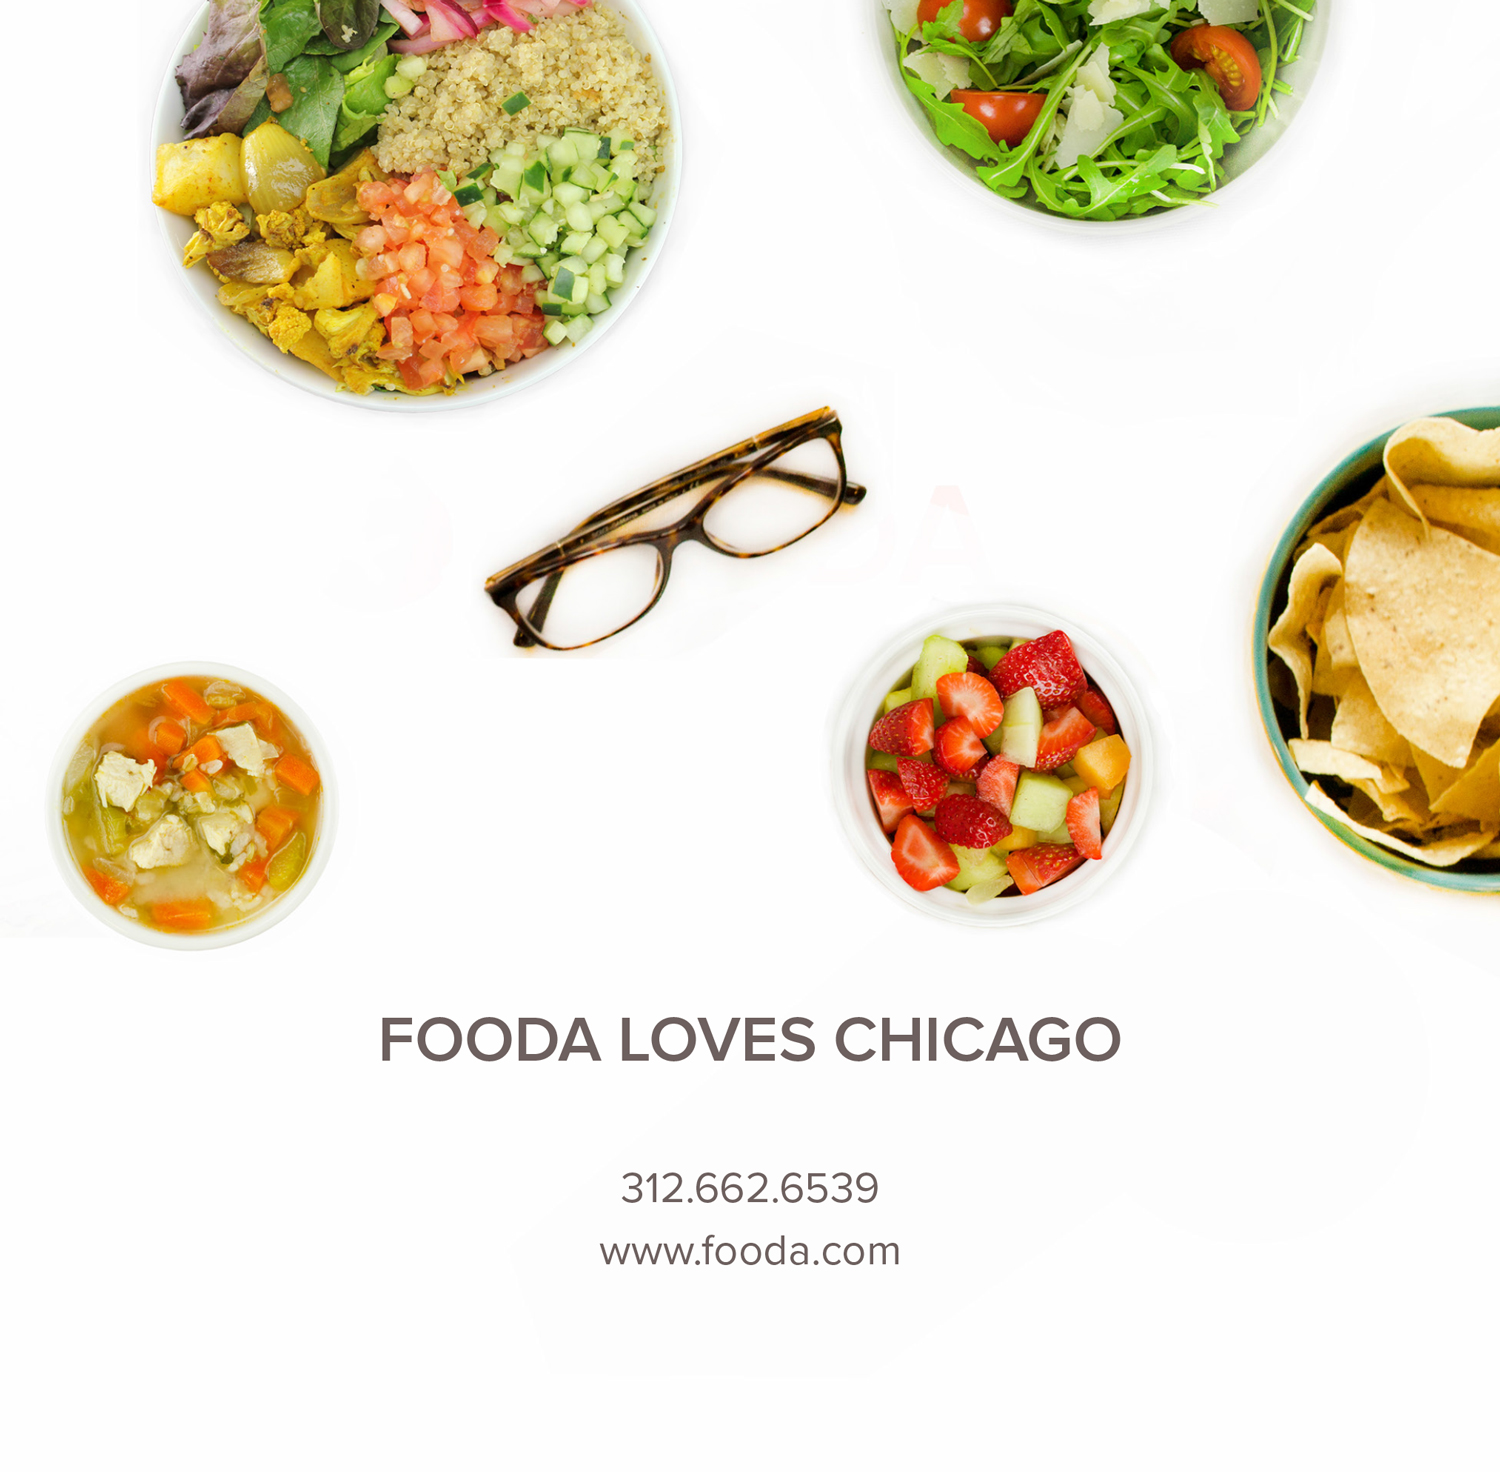 FoodaEducation_Chicago_CV020416_no_marks-17.jpg